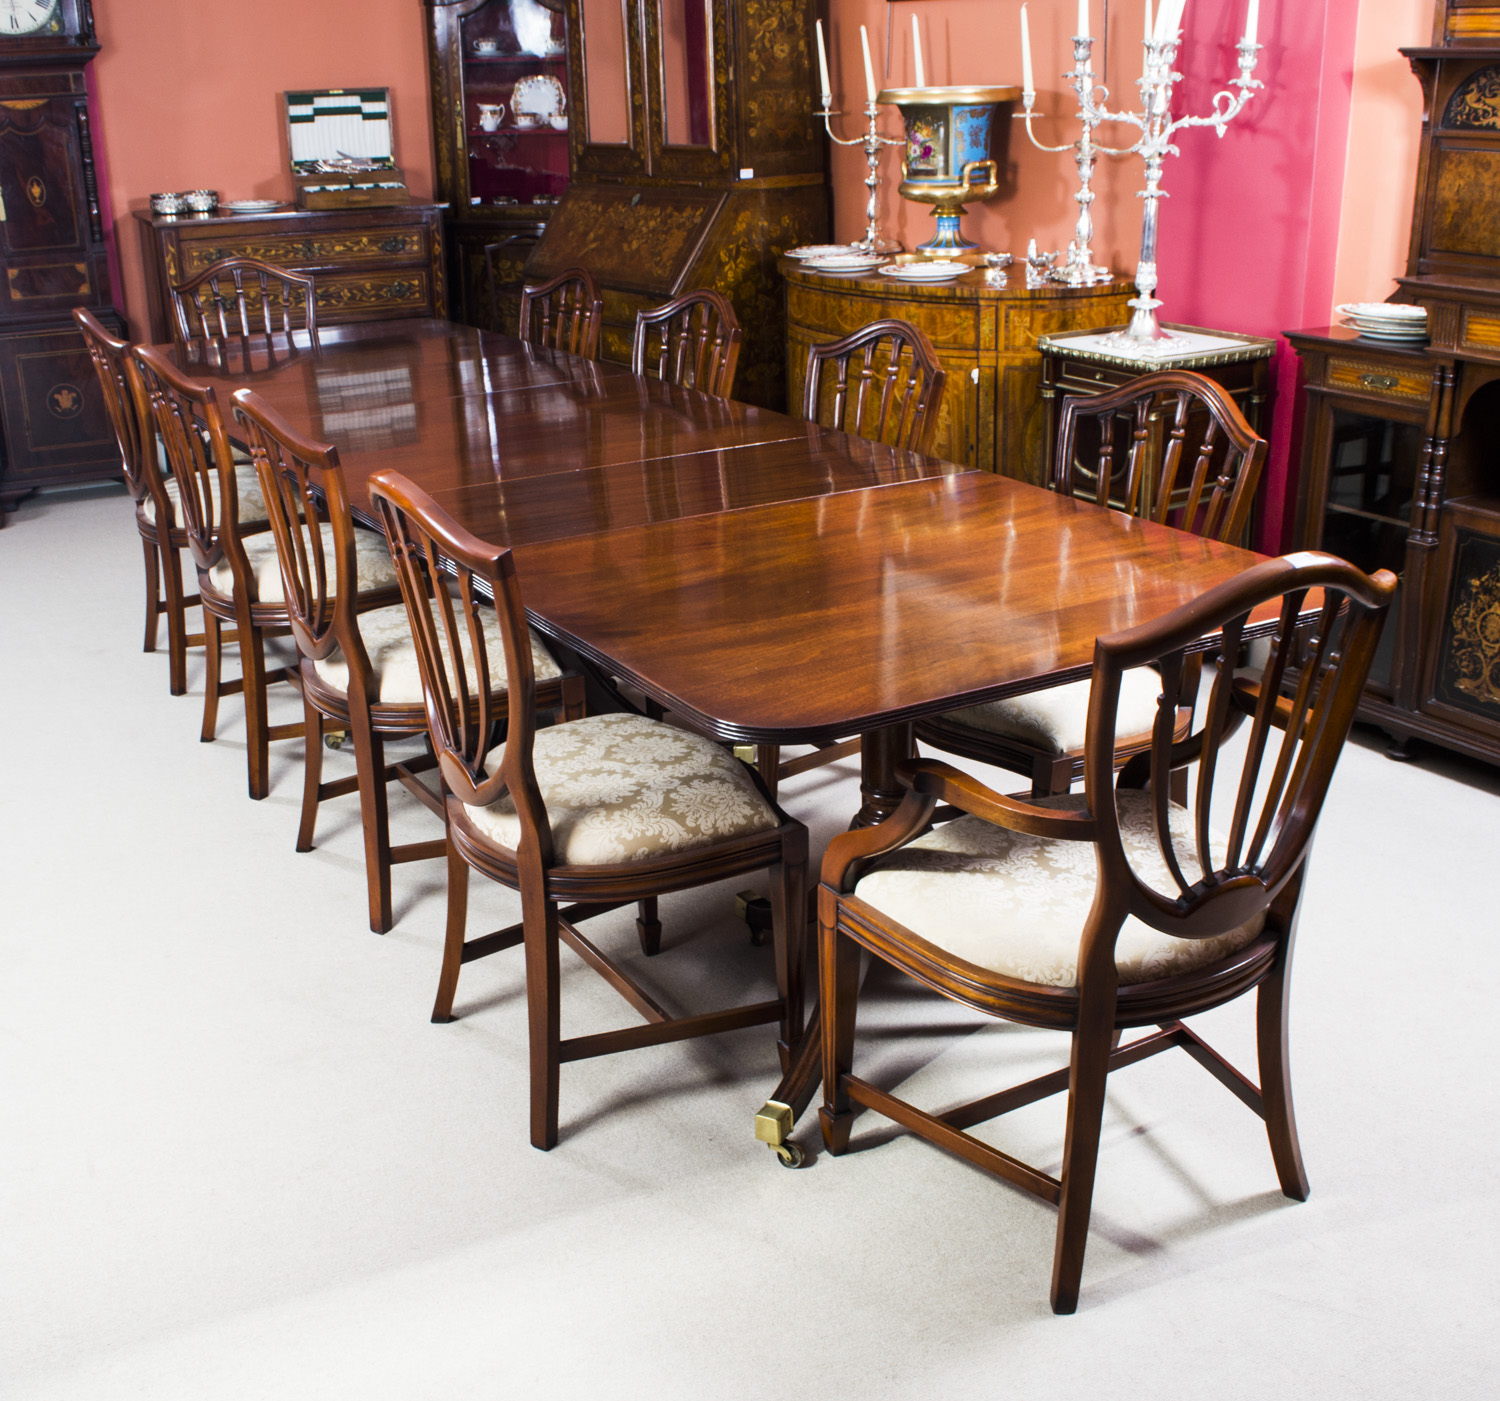 antique 12ft regency 3 pillar dining table 10 chairs c1900